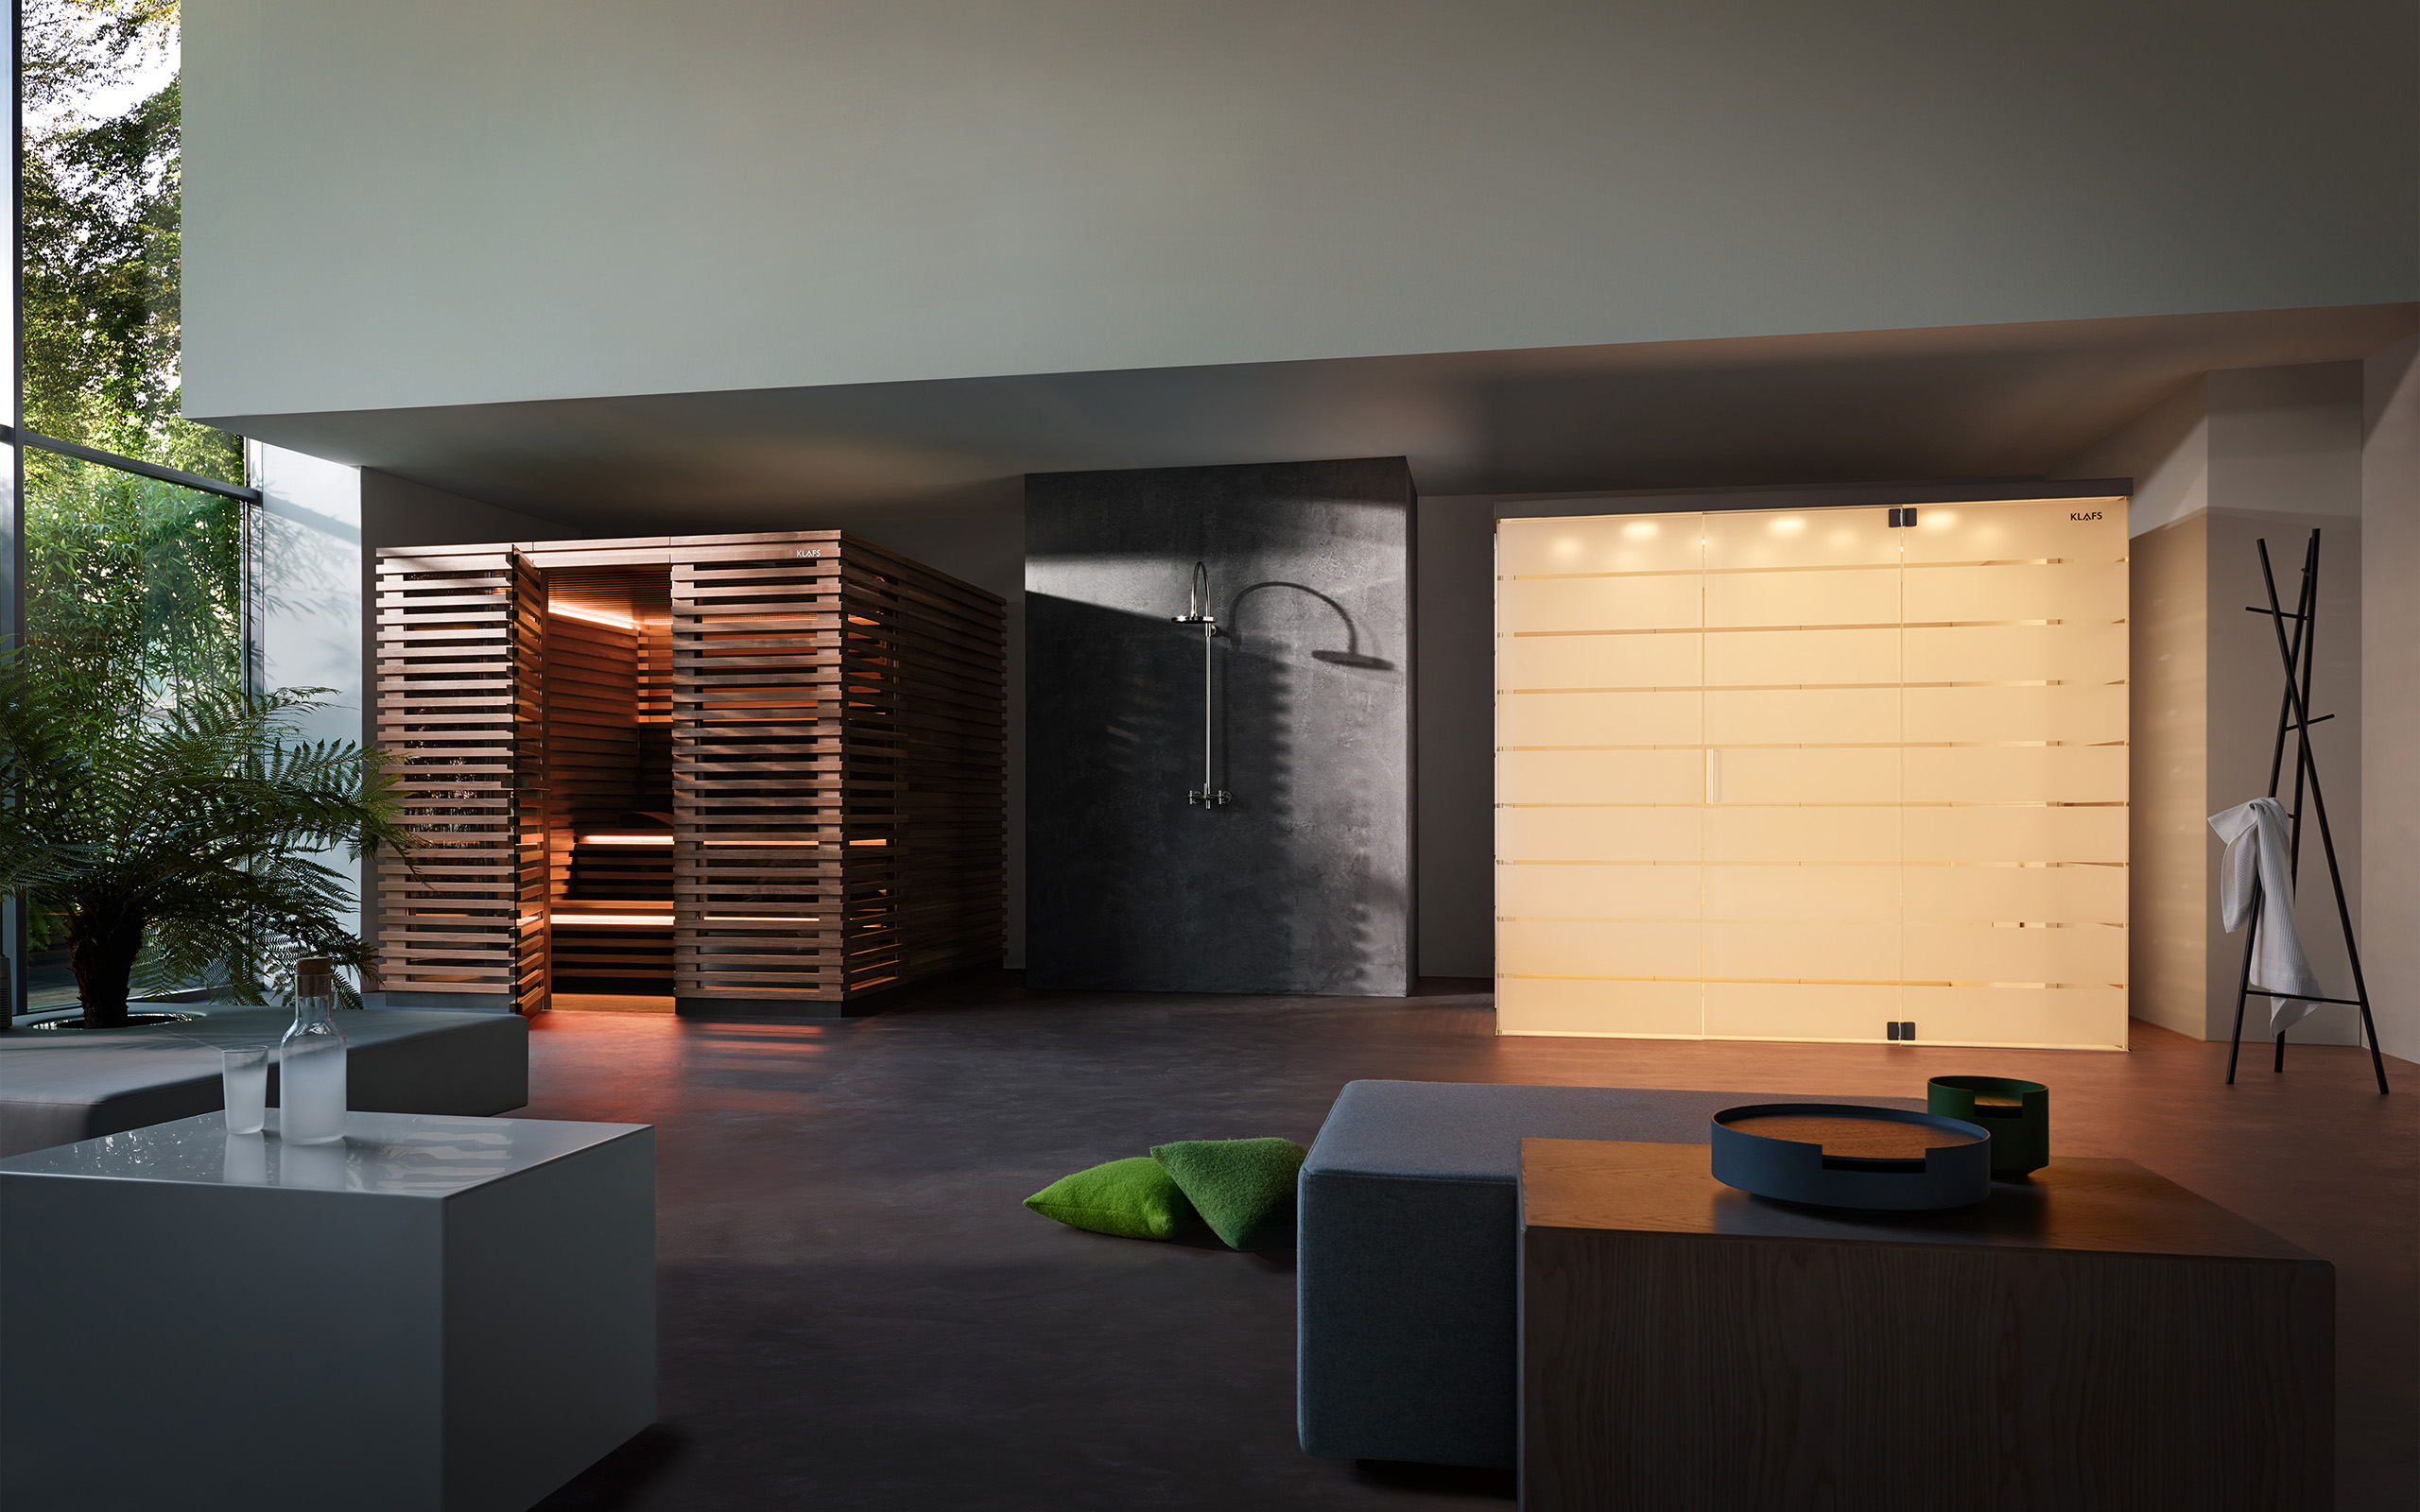 matteo thun design sauna by matteo thun and antonio rodriguez. Black Bedroom Furniture Sets. Home Design Ideas